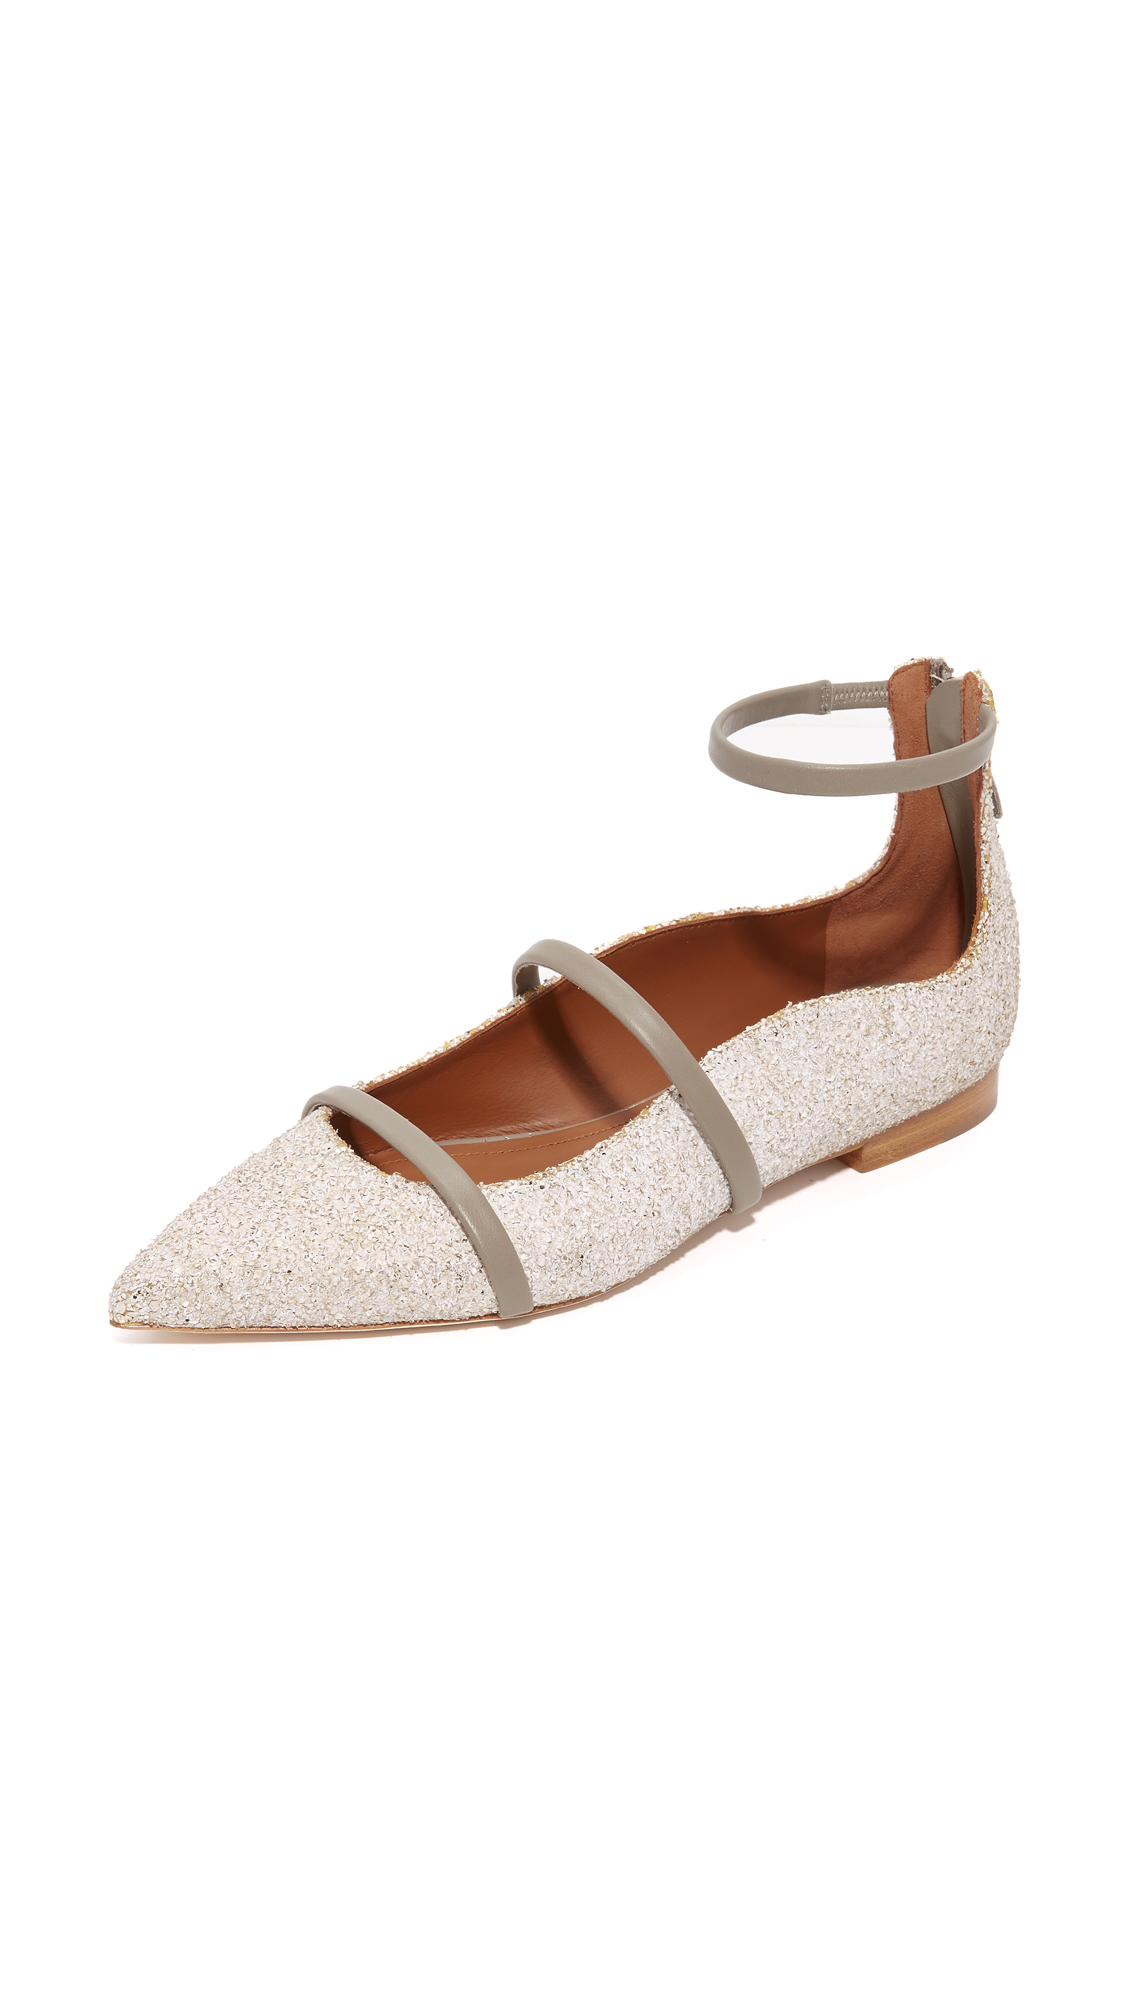 Malone Souliers Robyn Flats - White/Grey